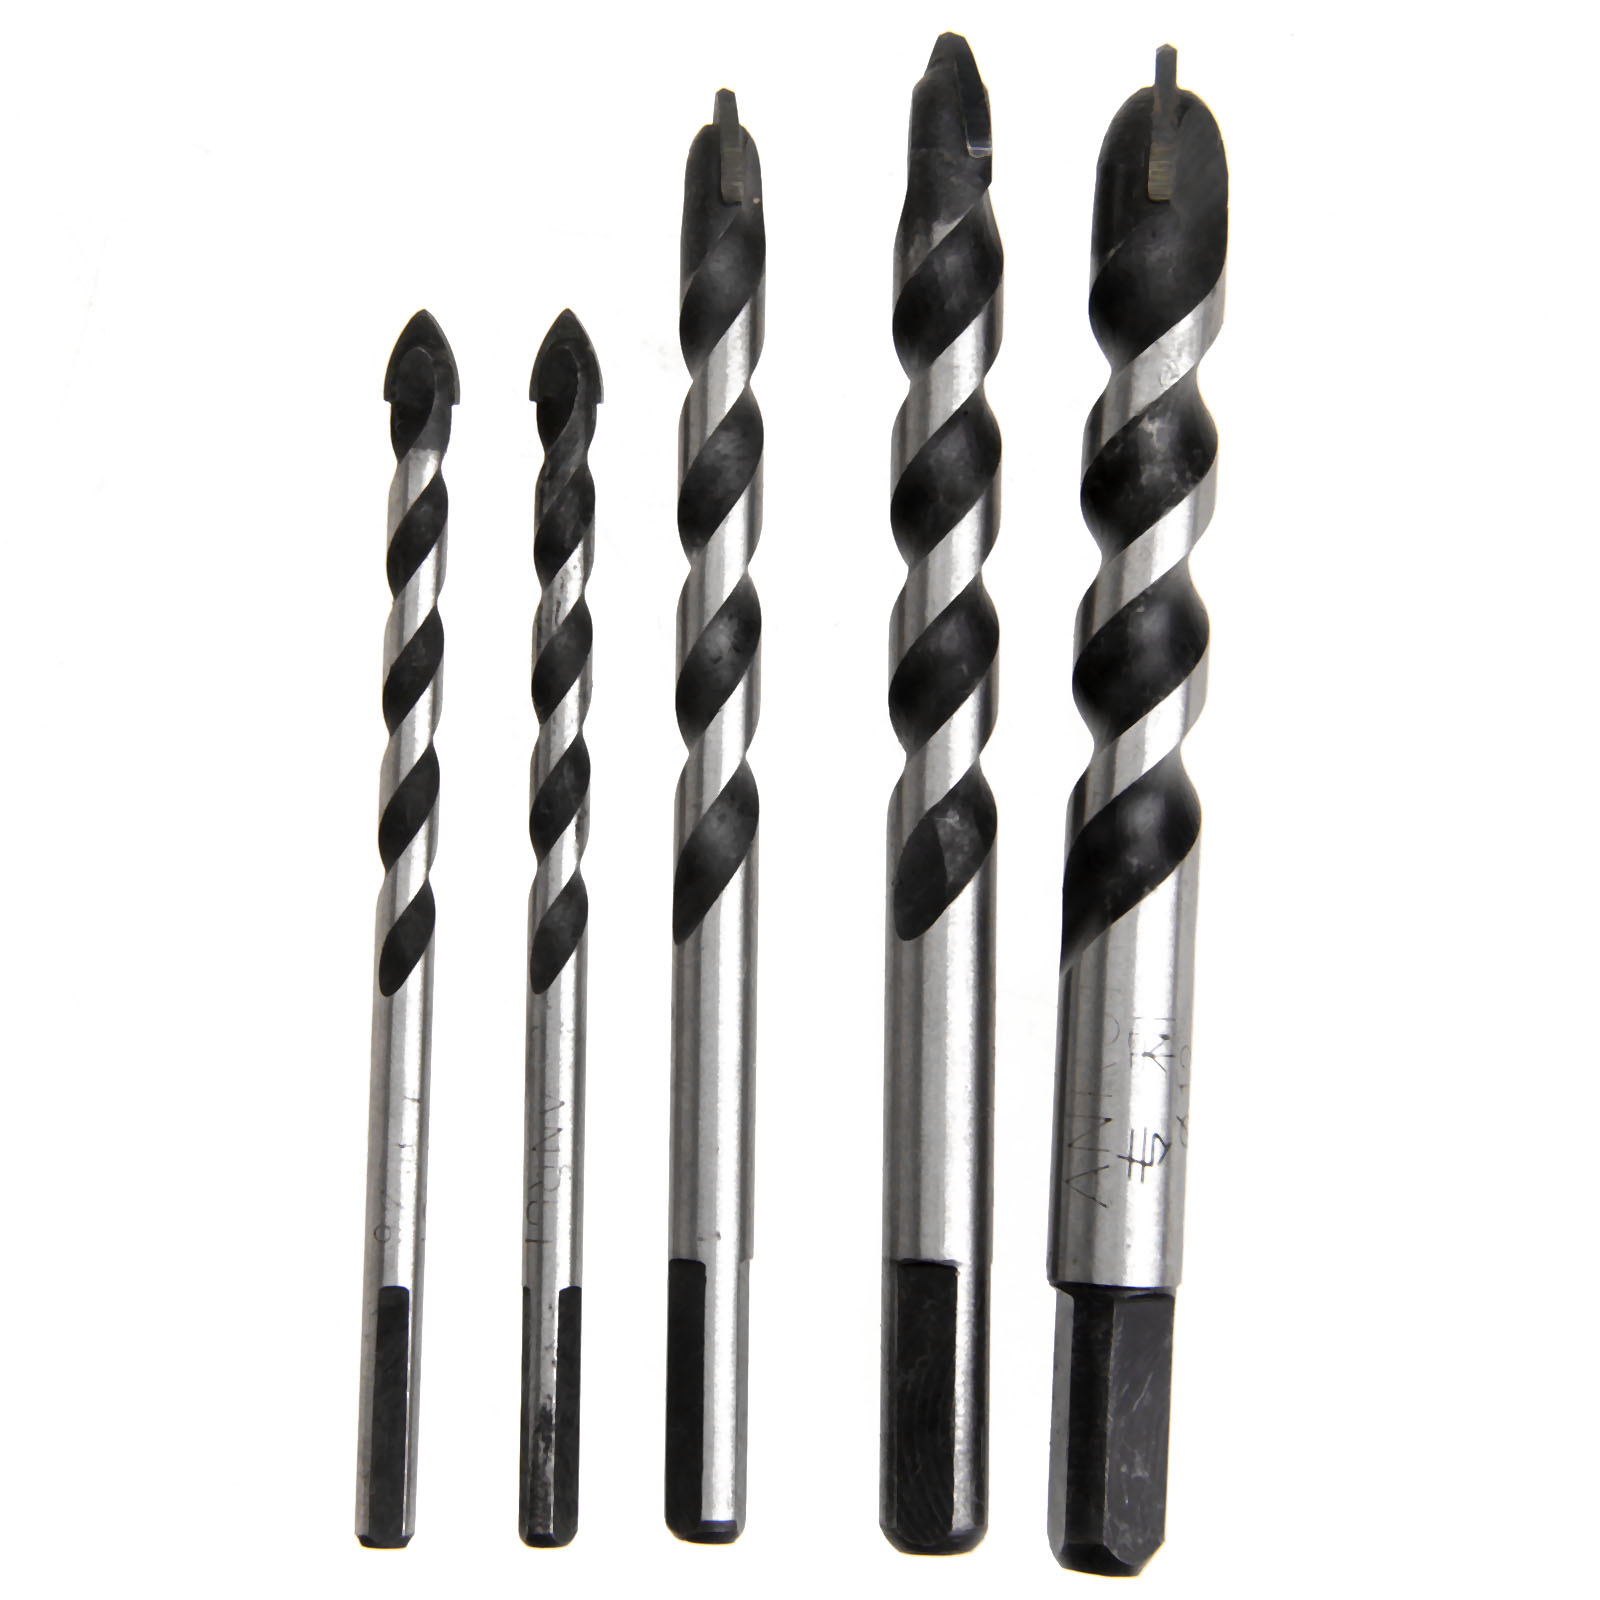 5Pcs Drywall Tungsten Carbide Drill Bit Set for Wood Ceramic Tile Marble Mirror Glass w/ Triangle Shank Power Tool 6/6/8/10/12mm 5pcs drywall tungsten carbide drill bit set for wood ceramic tile marble mirror glass w triangle shank power tool 6 6 8 10 12mm